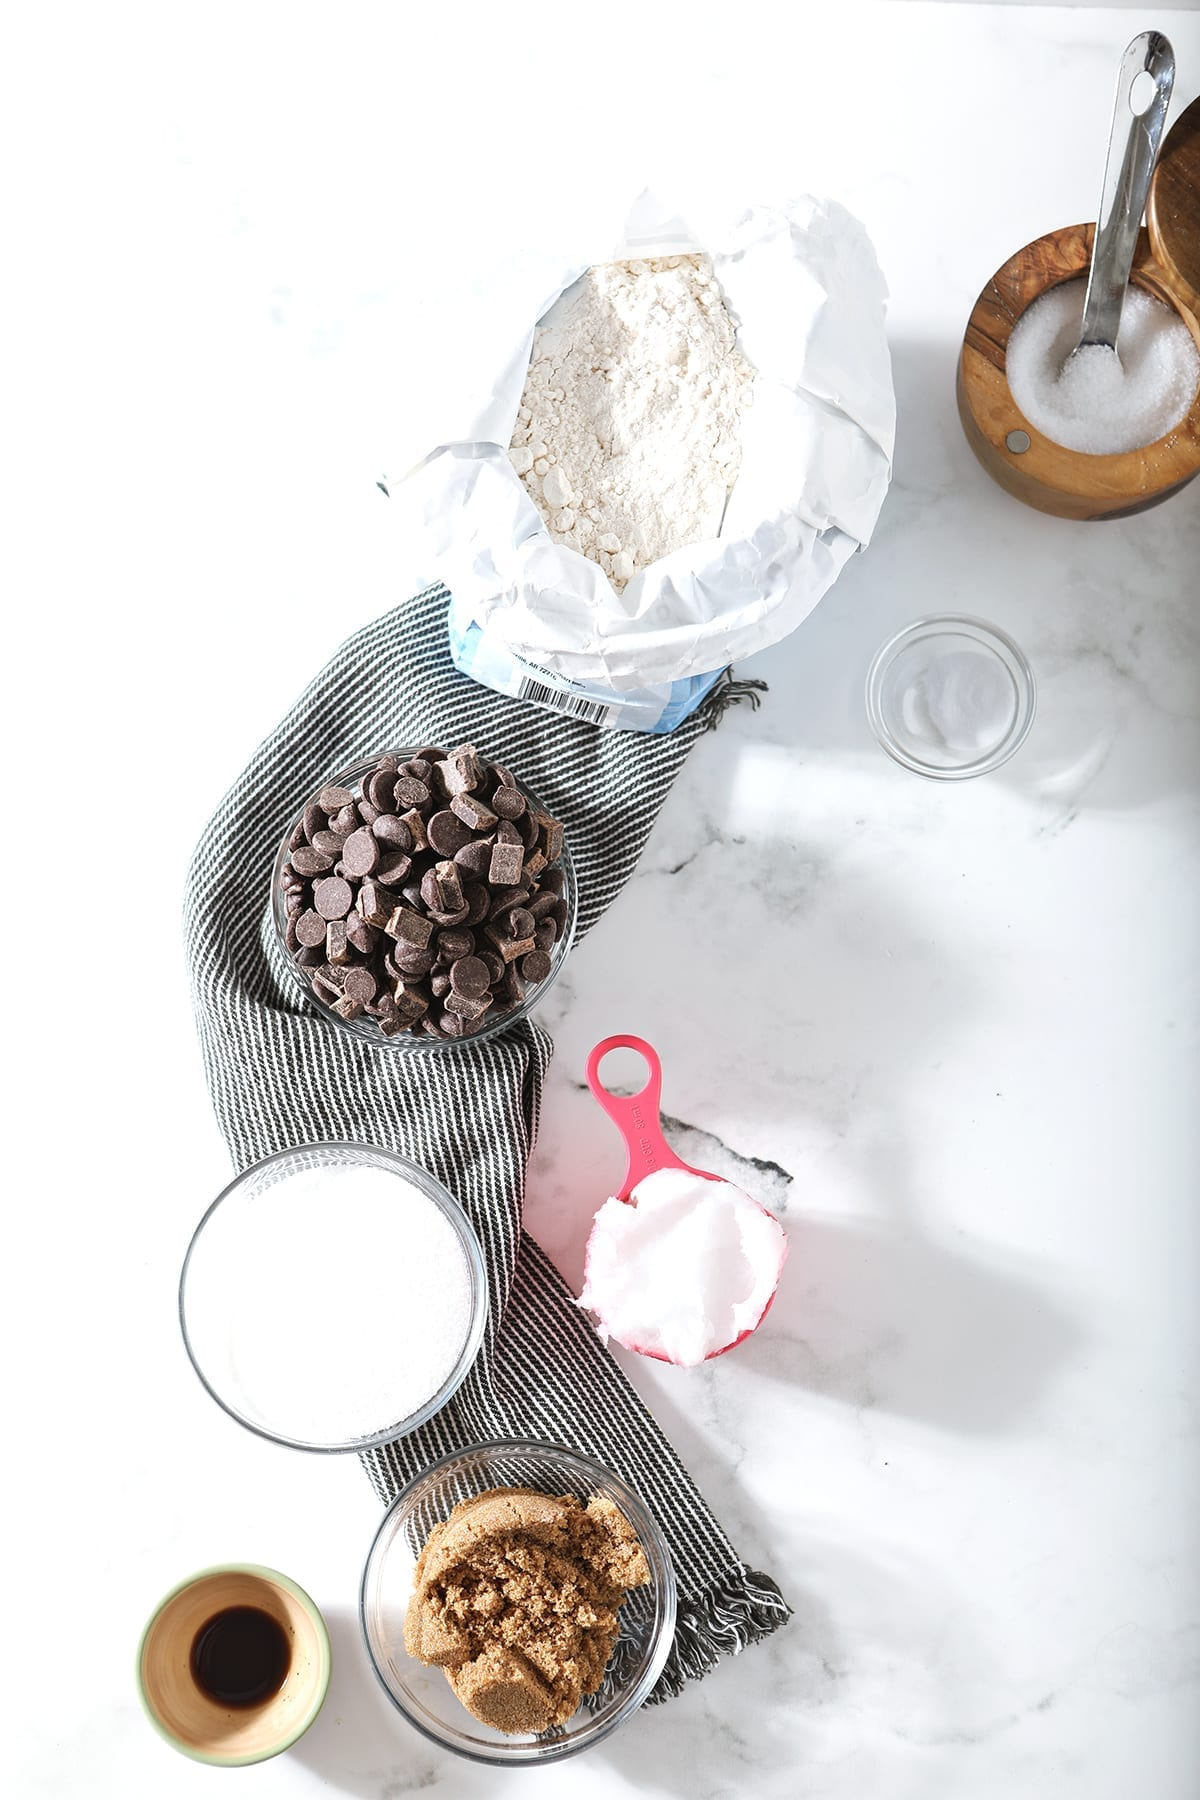 Ingredients for cookies, shown from above on a marble surface